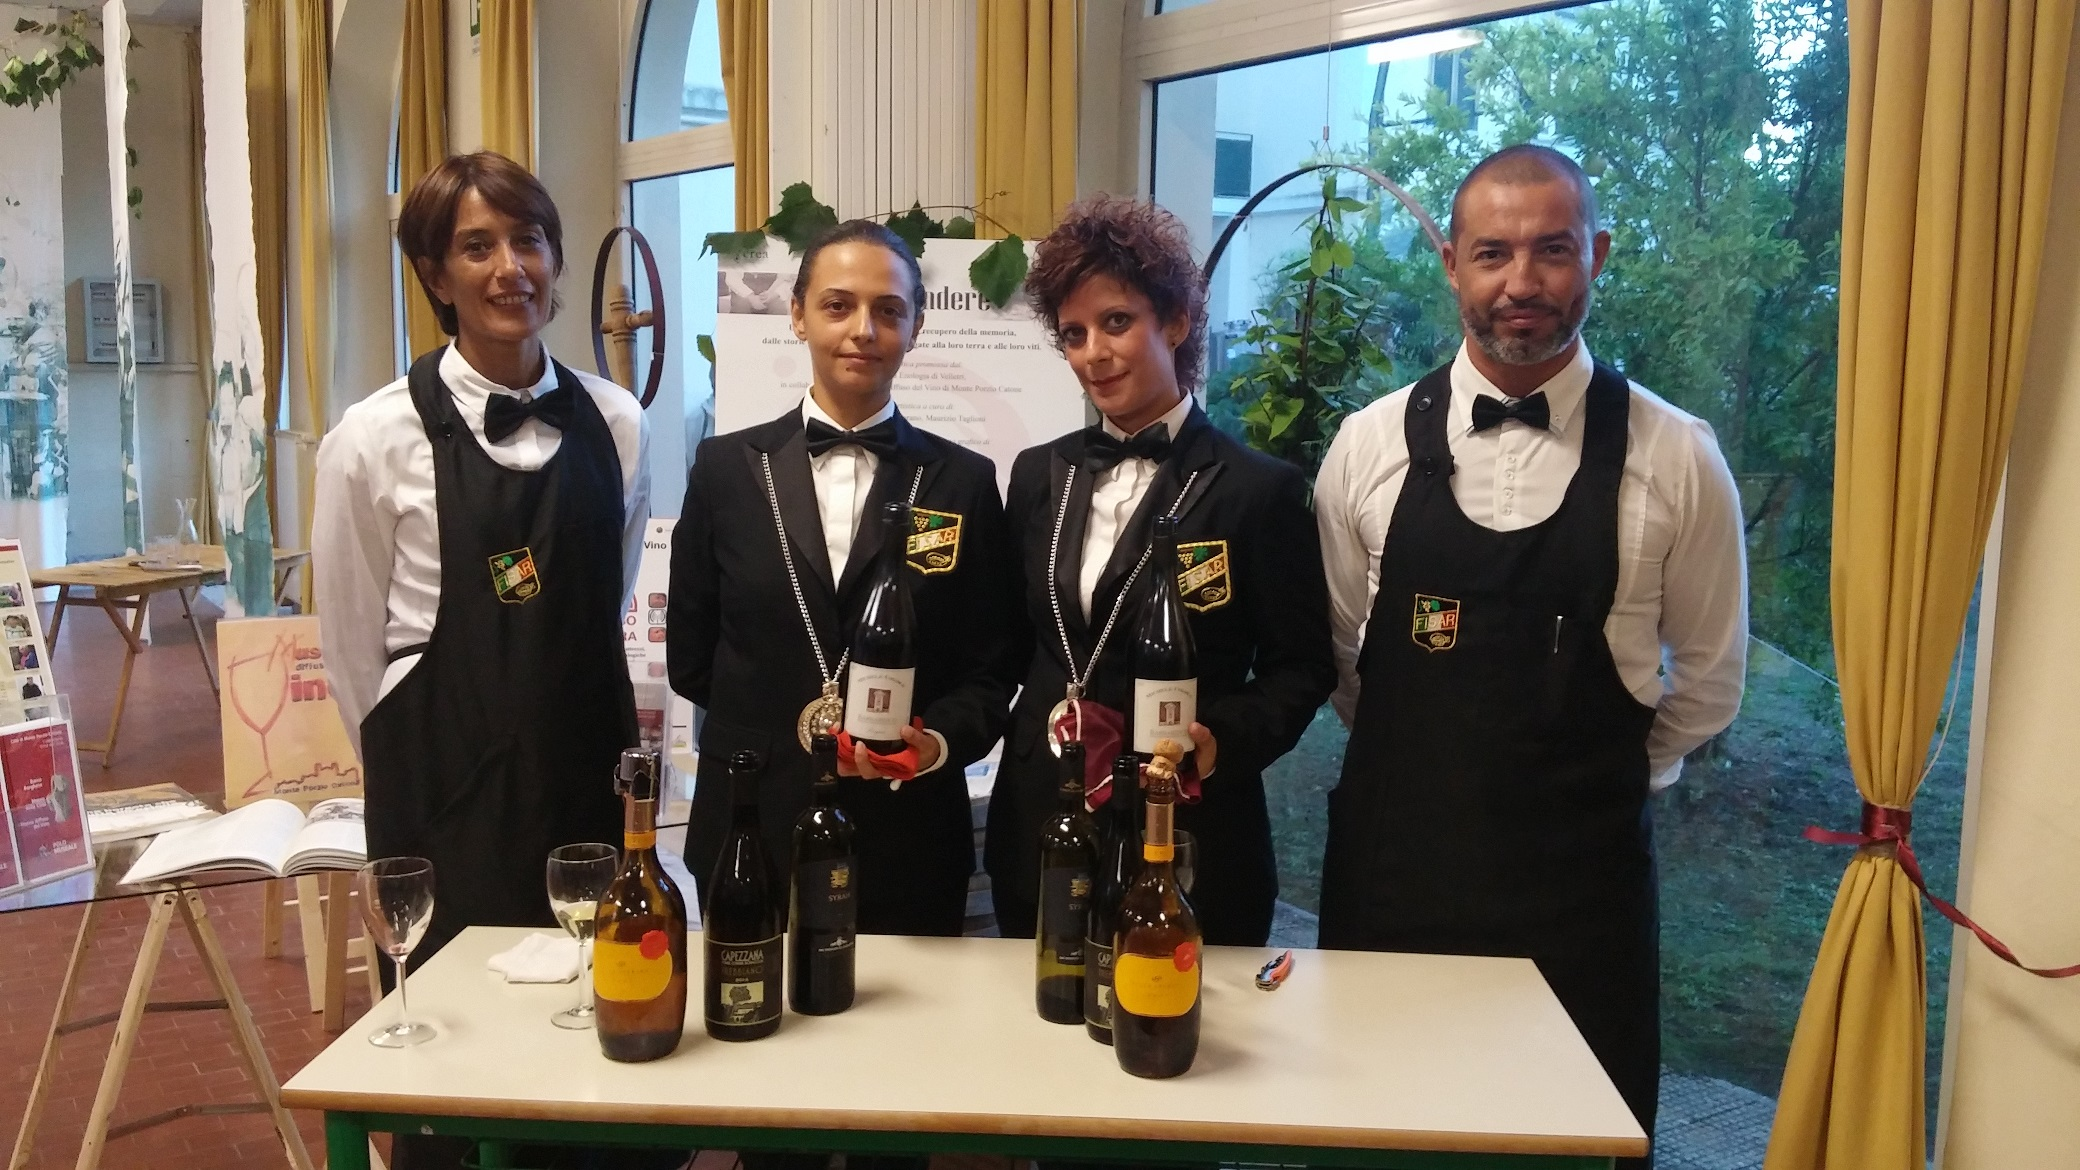 http://ideeinfermento.it/wp/wp-content/uploads/2017/05/Tutti-giù-in-cantina-sommelier-FISAR.jpg